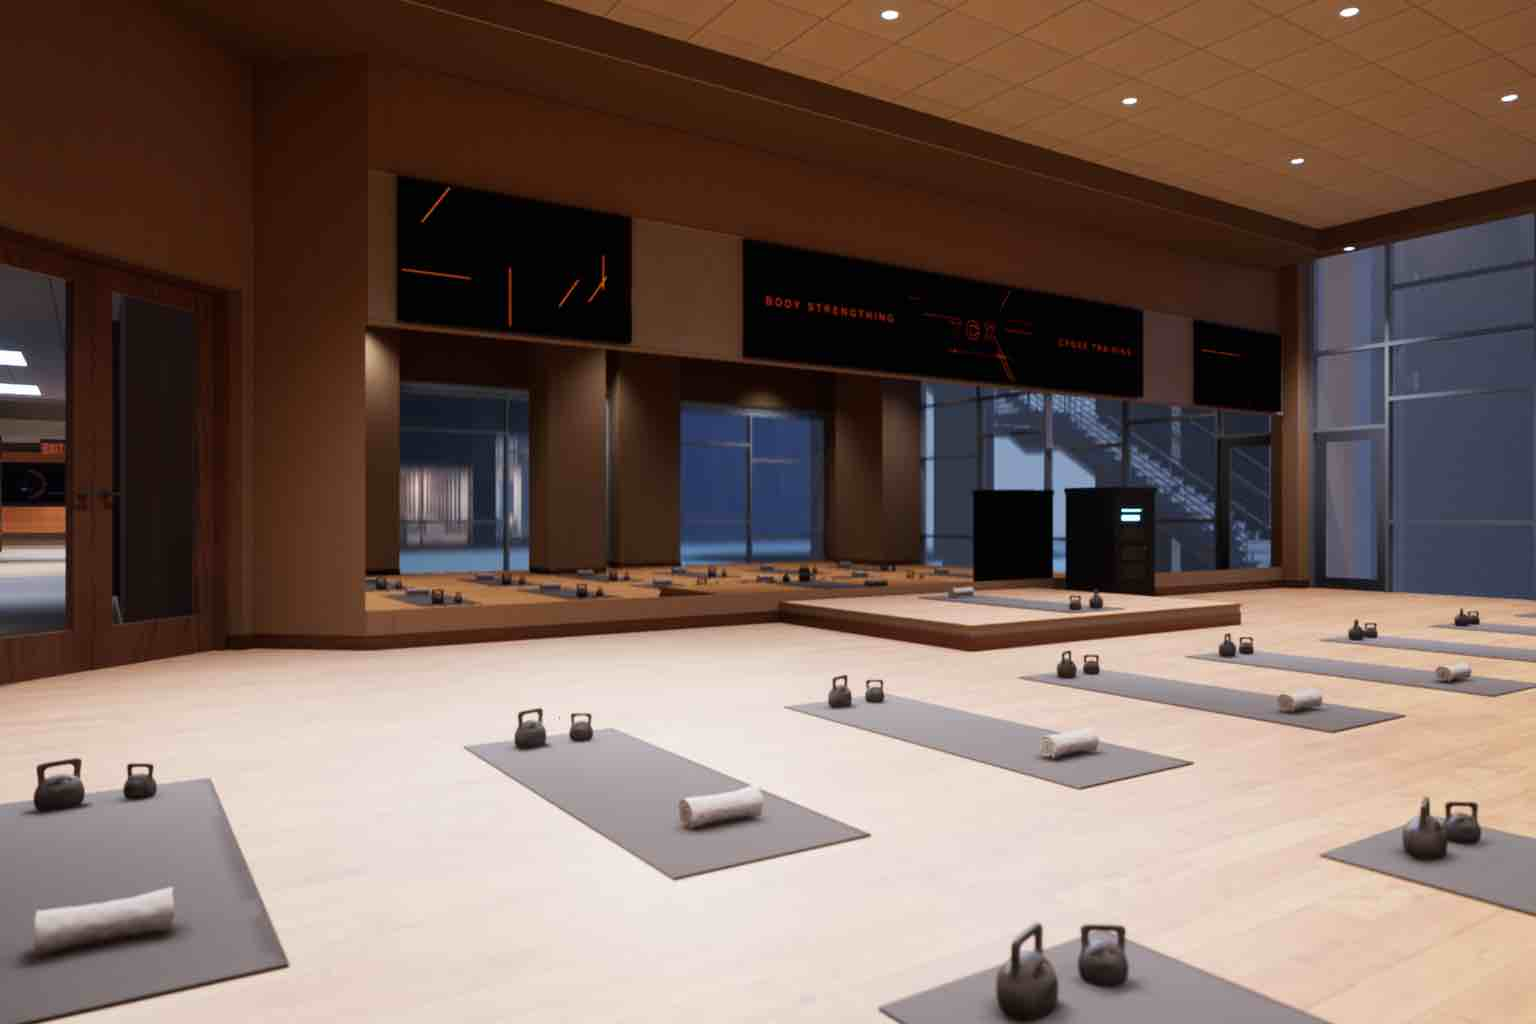 yoga mats laid out in a studio